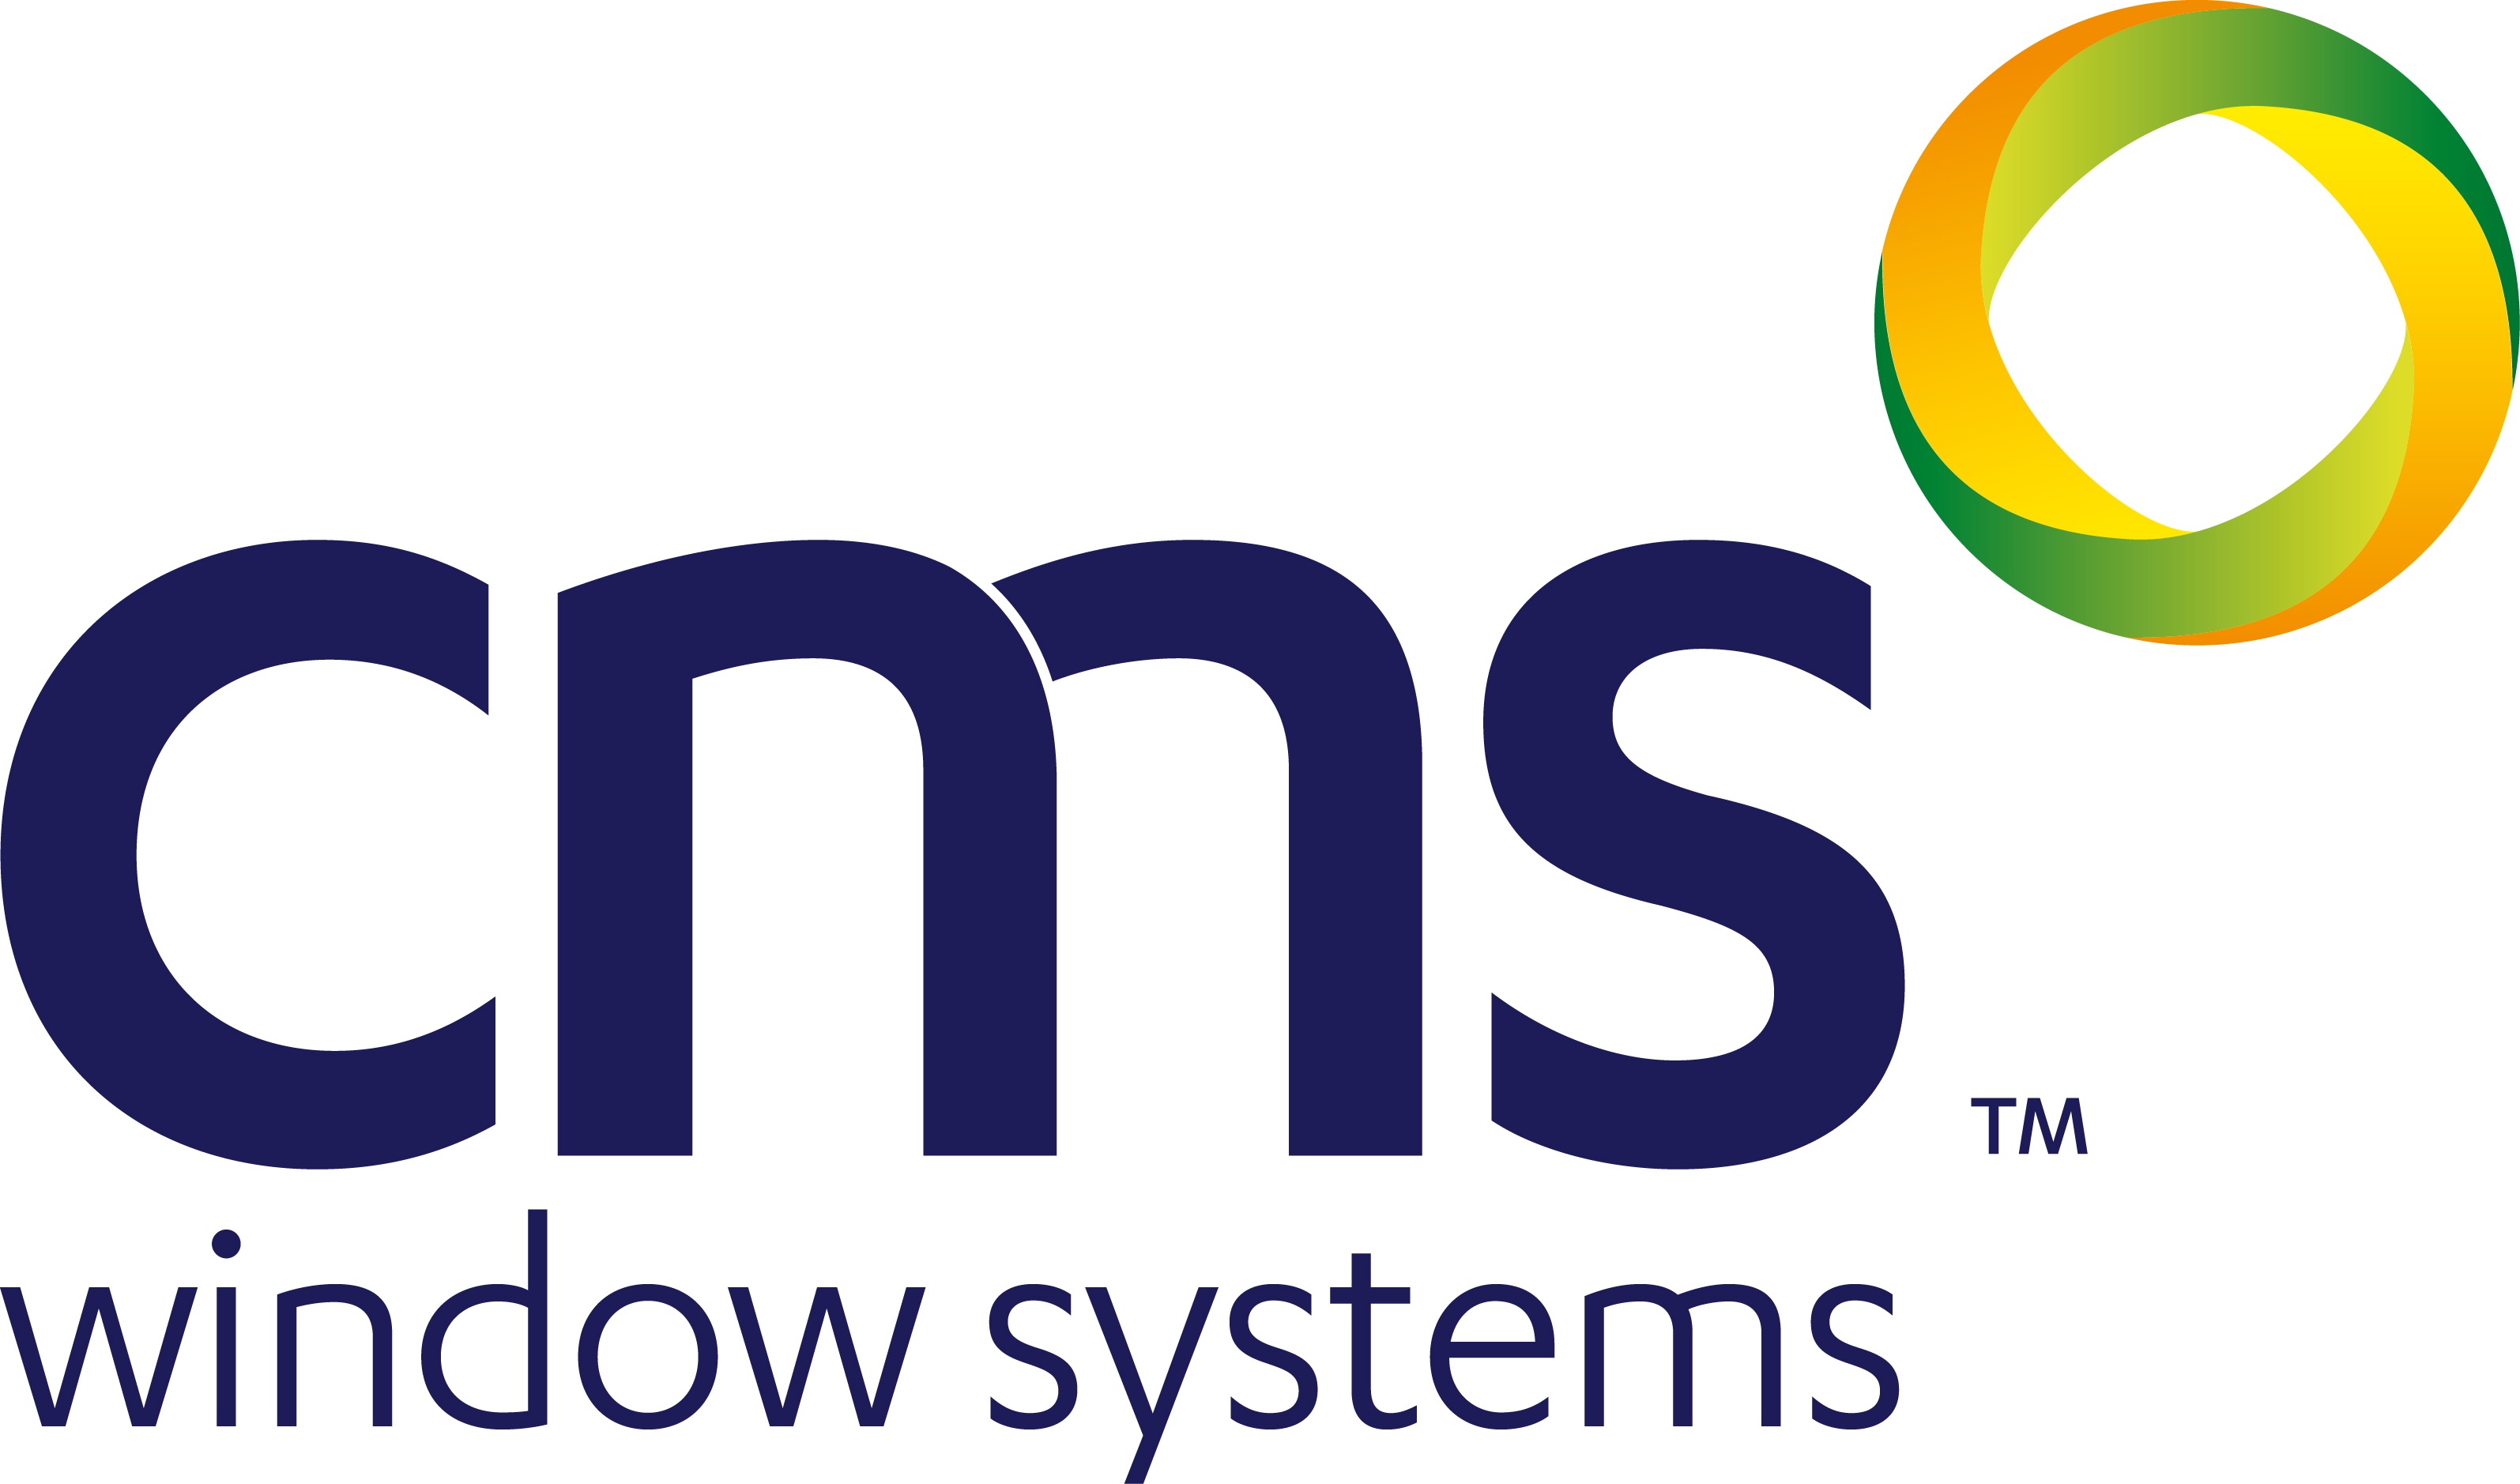 CMS Windows